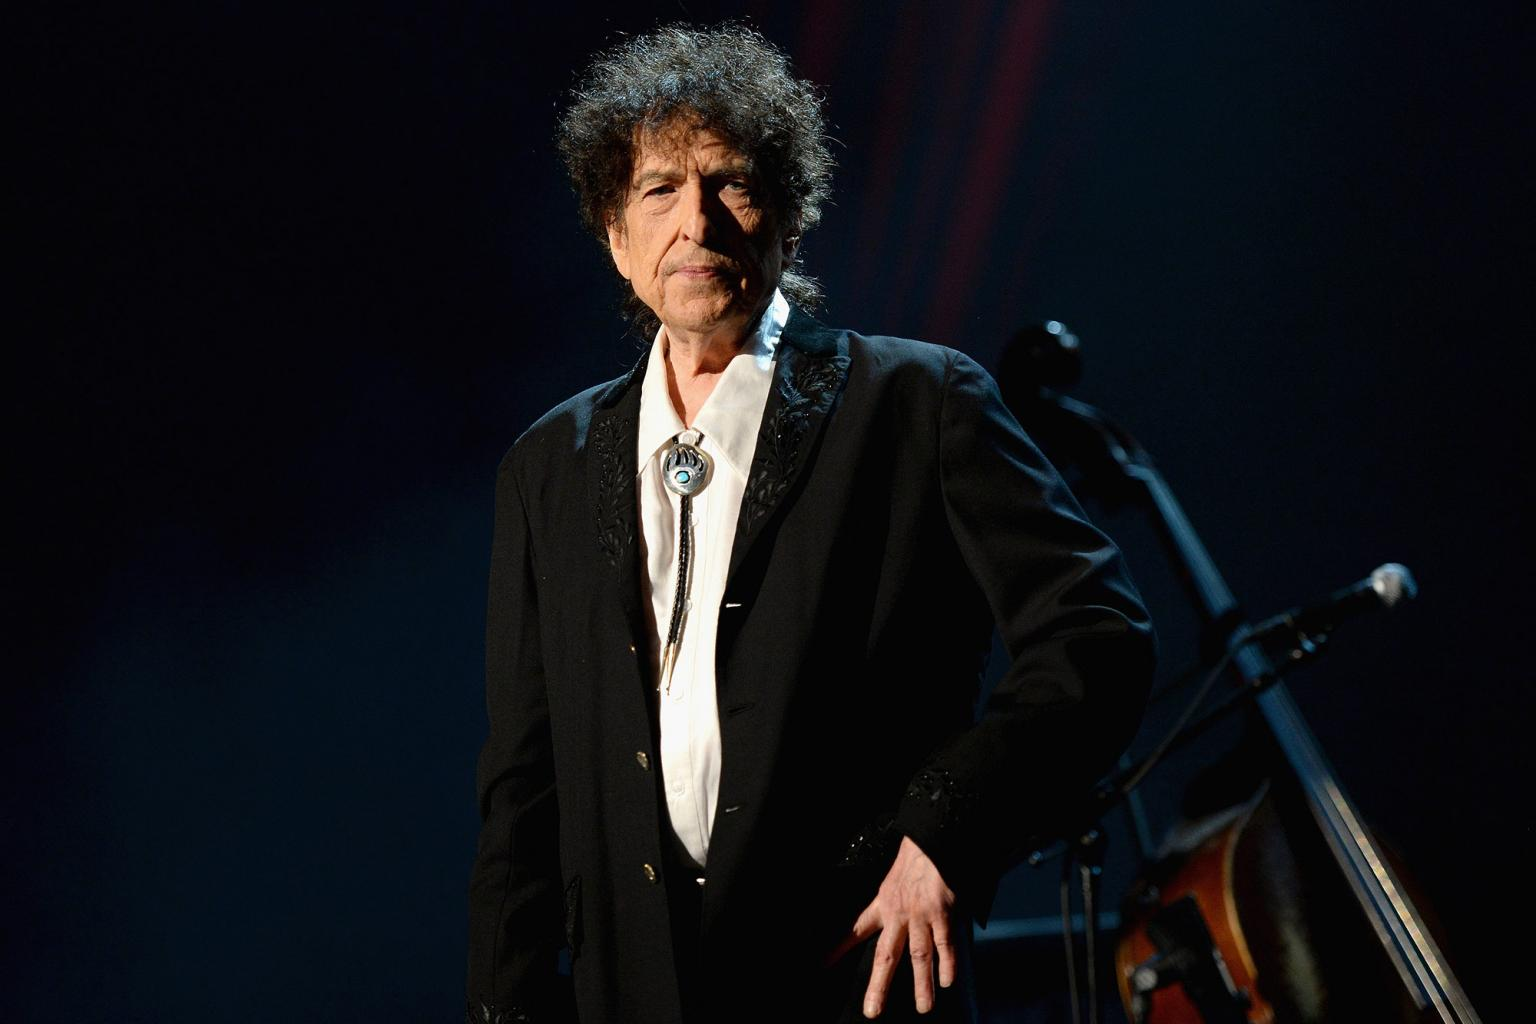 Bob Dylan Says He Is 'Beyond Words' While Accepting Nobel Peace Prize for Literature in Penned Speech